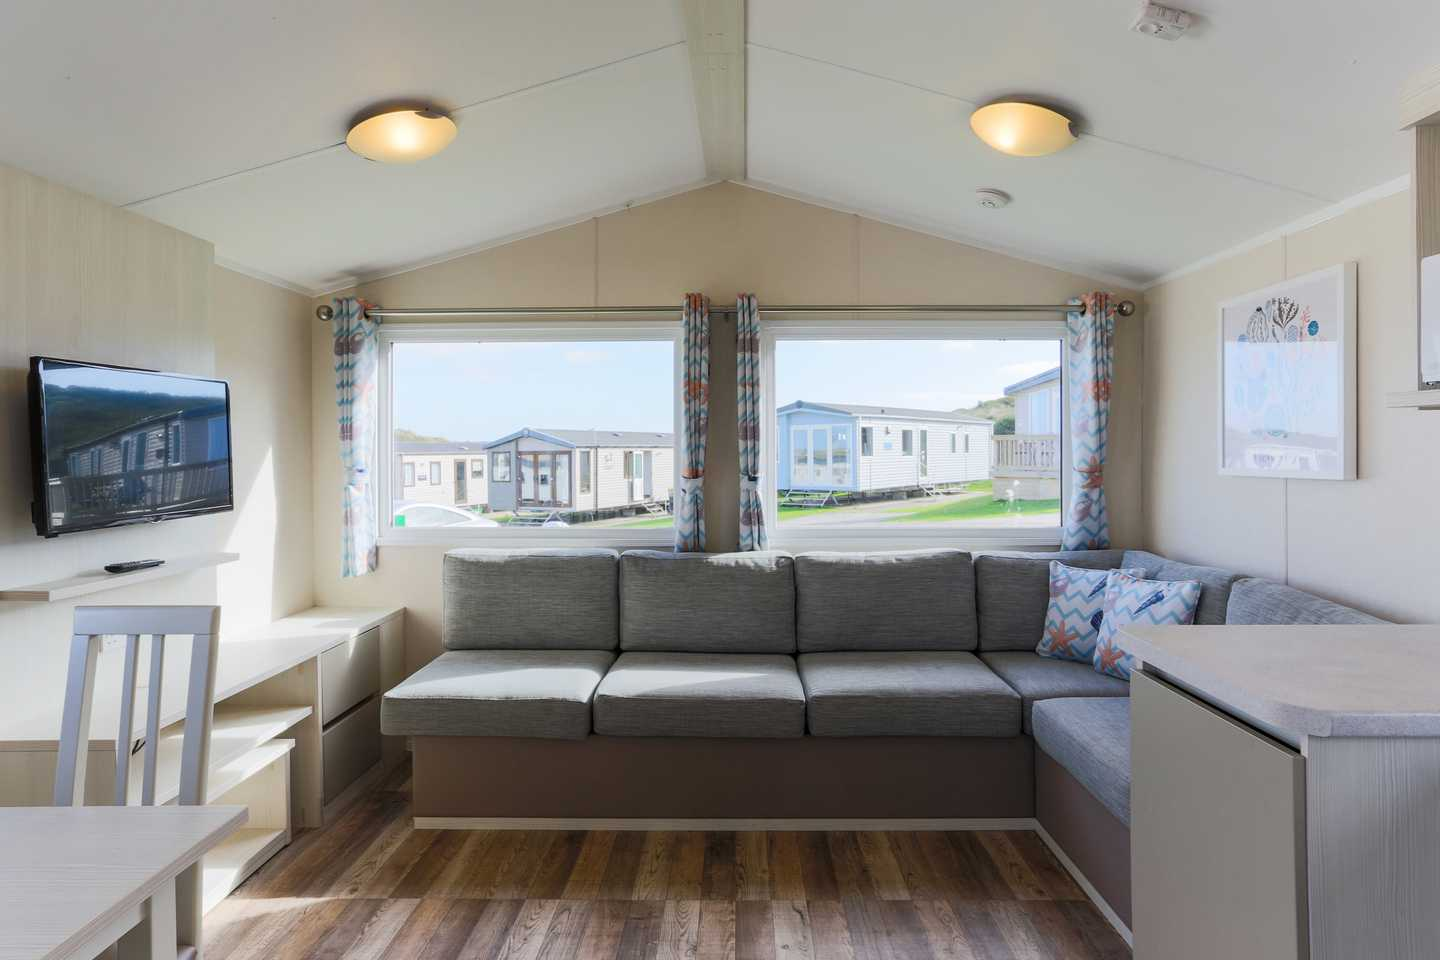 An Adapted caravan with dining area, TV and sofa